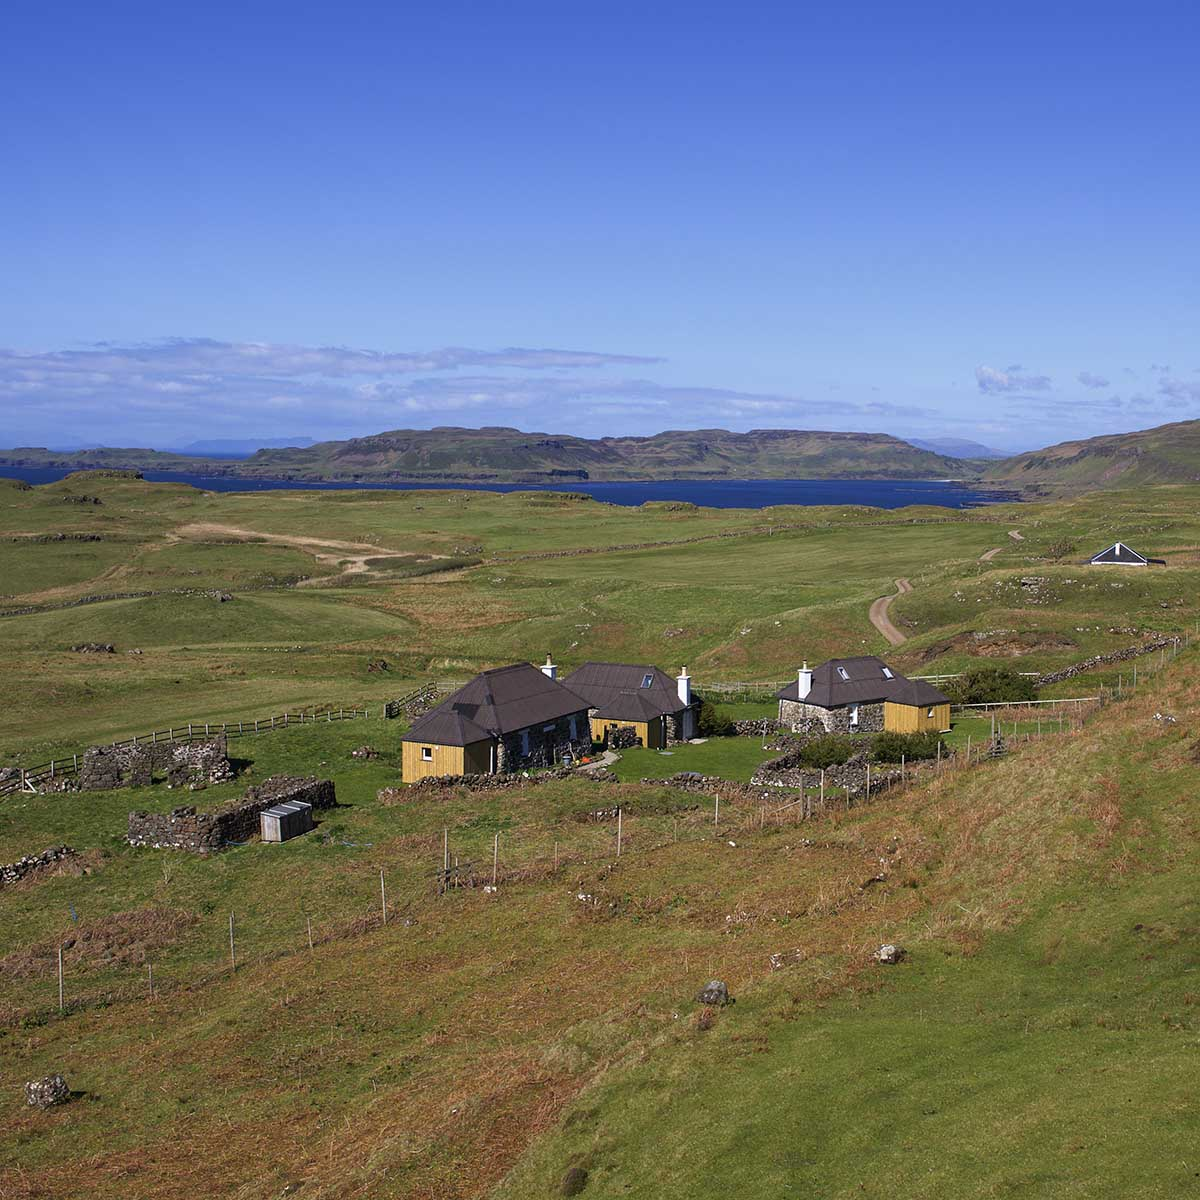 Treshnish, Mull, self-catering cottage, Haunn with view of Calgary Bay